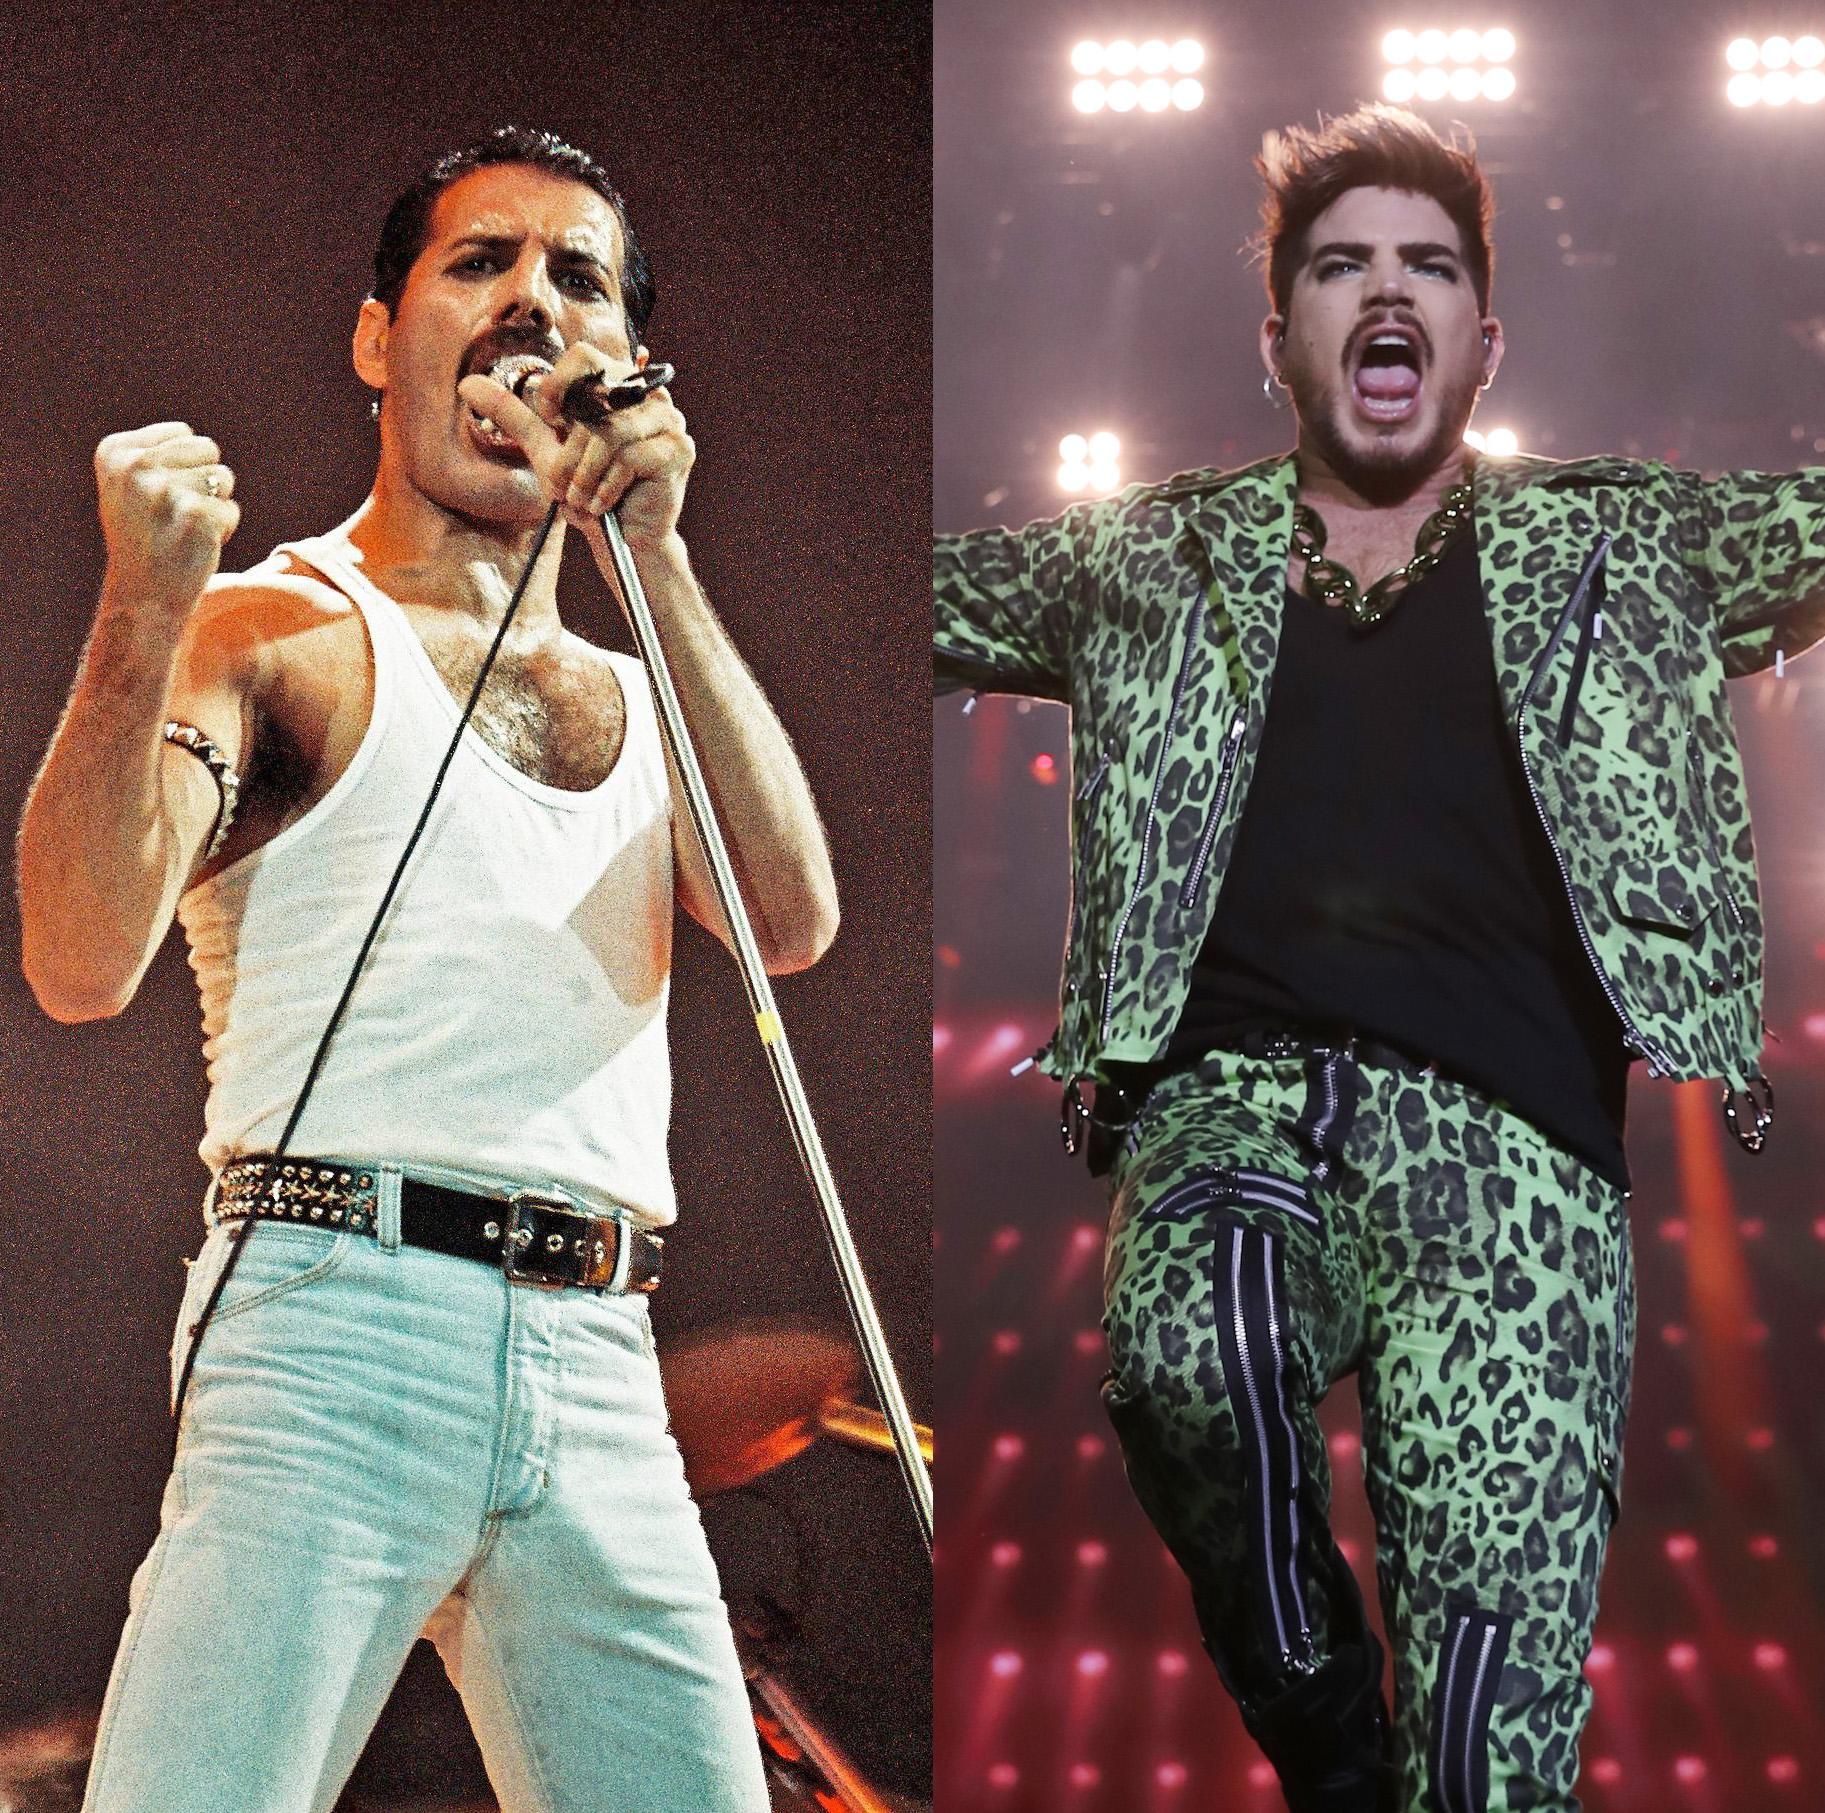 Watch Adam Lambert and Queen reenact iconic Live Aid concert for first time since 1985